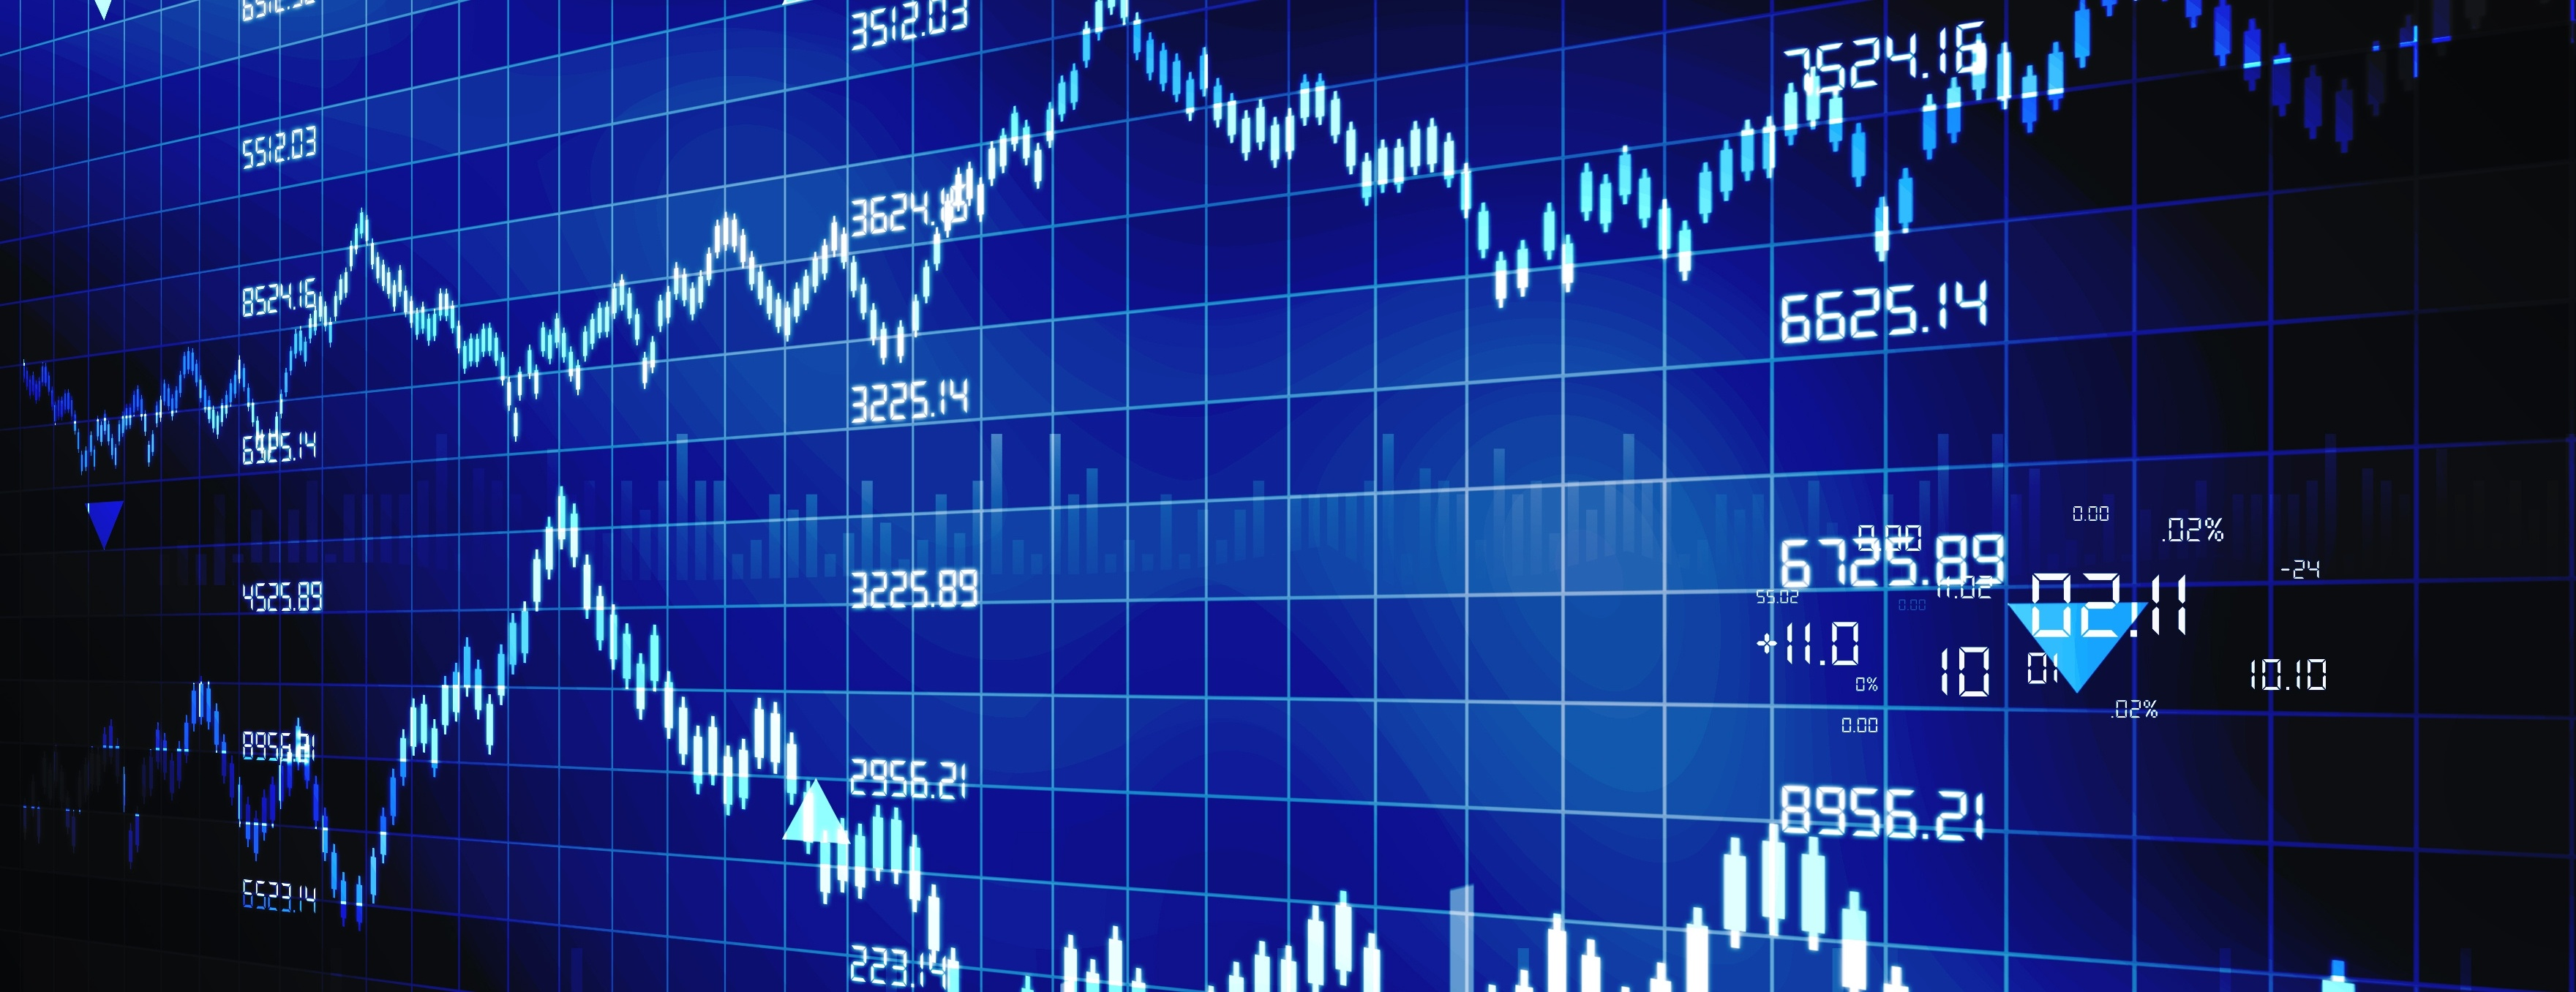 Forex Trading Forex Market What Is it  SIRIUS FOREX TRADING GROUP